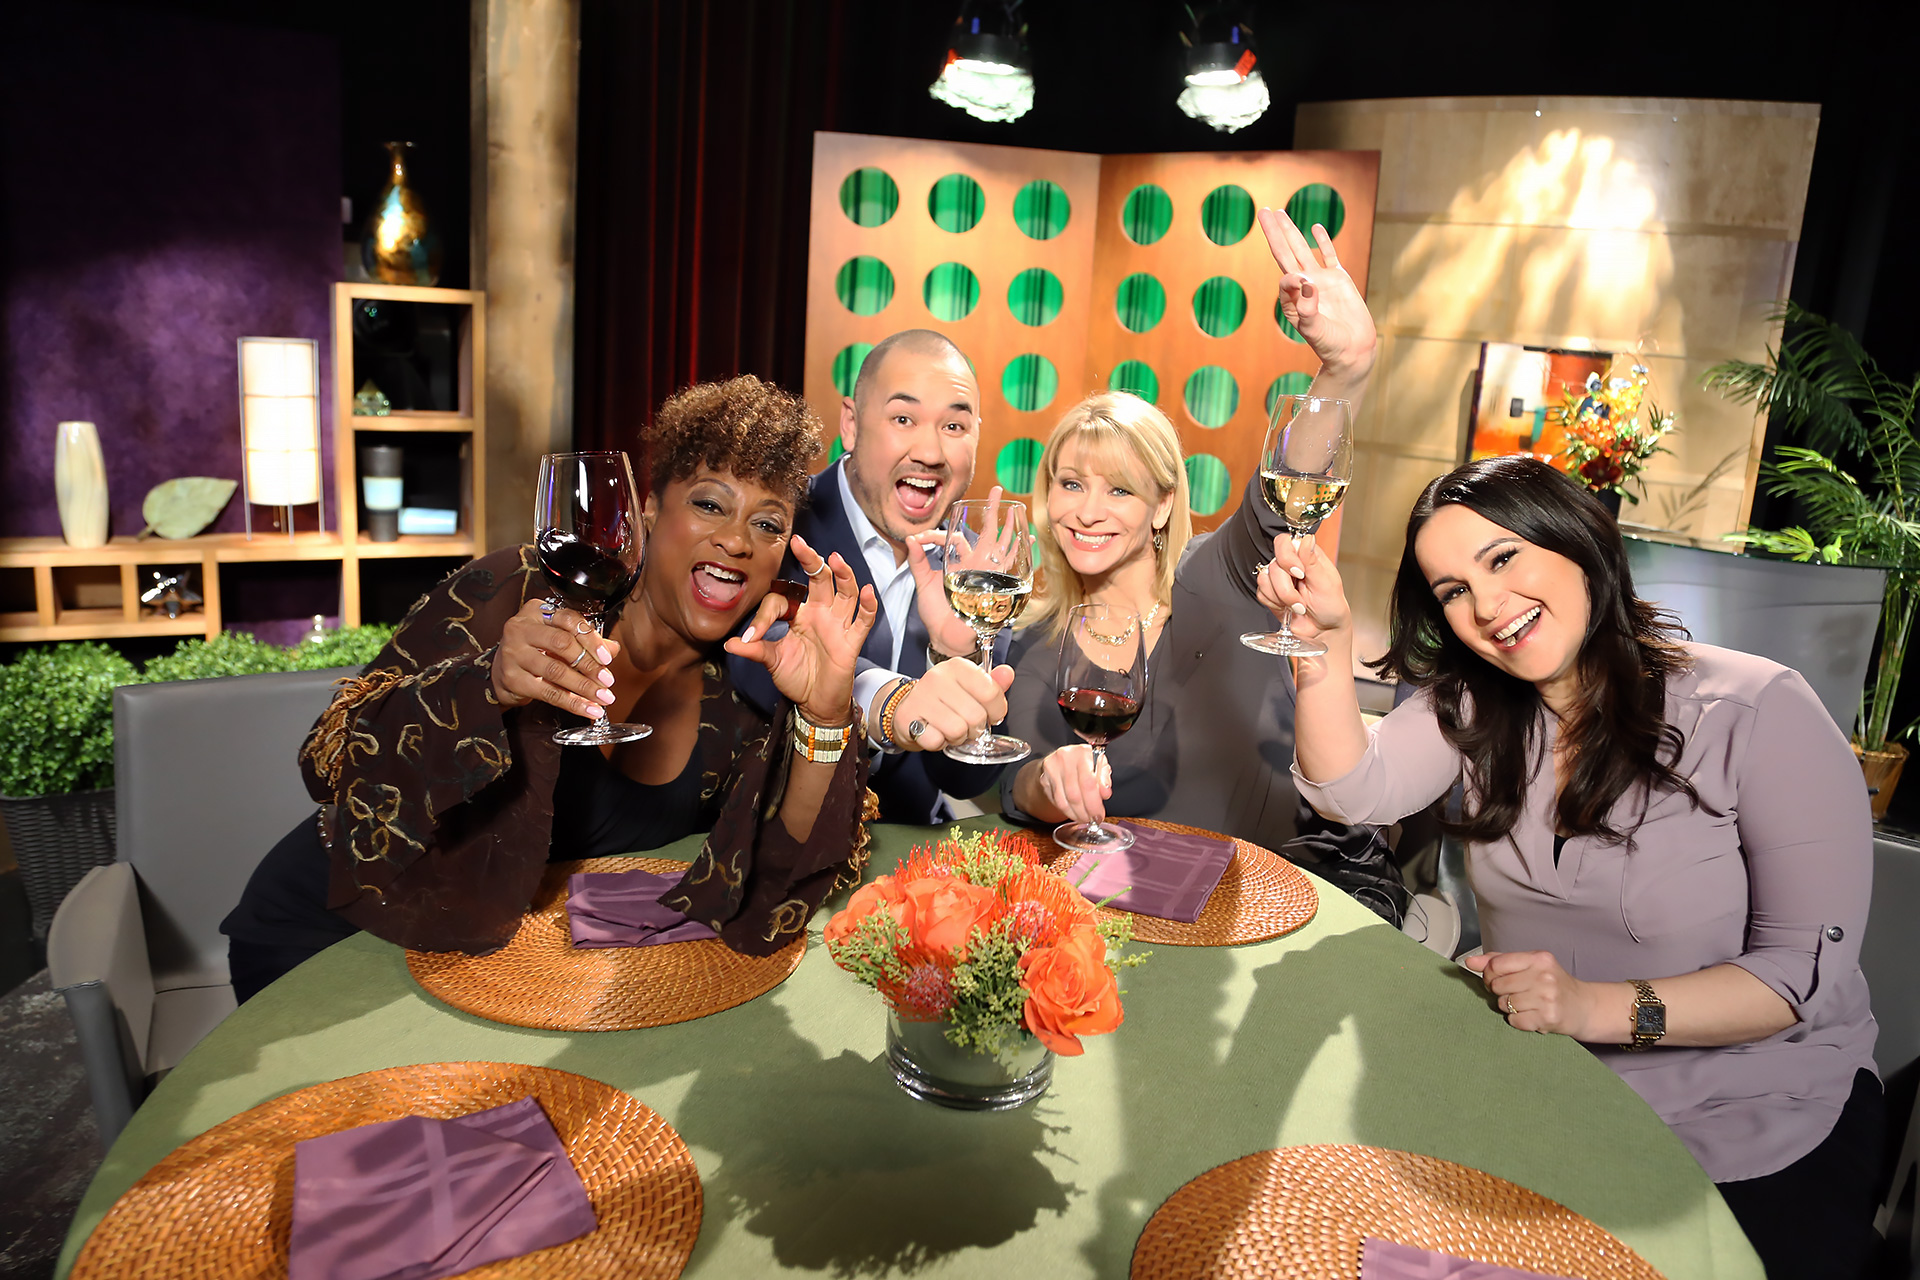 Host Leslie Sbrocco and guests having fun on the set of season 13 episode 5.